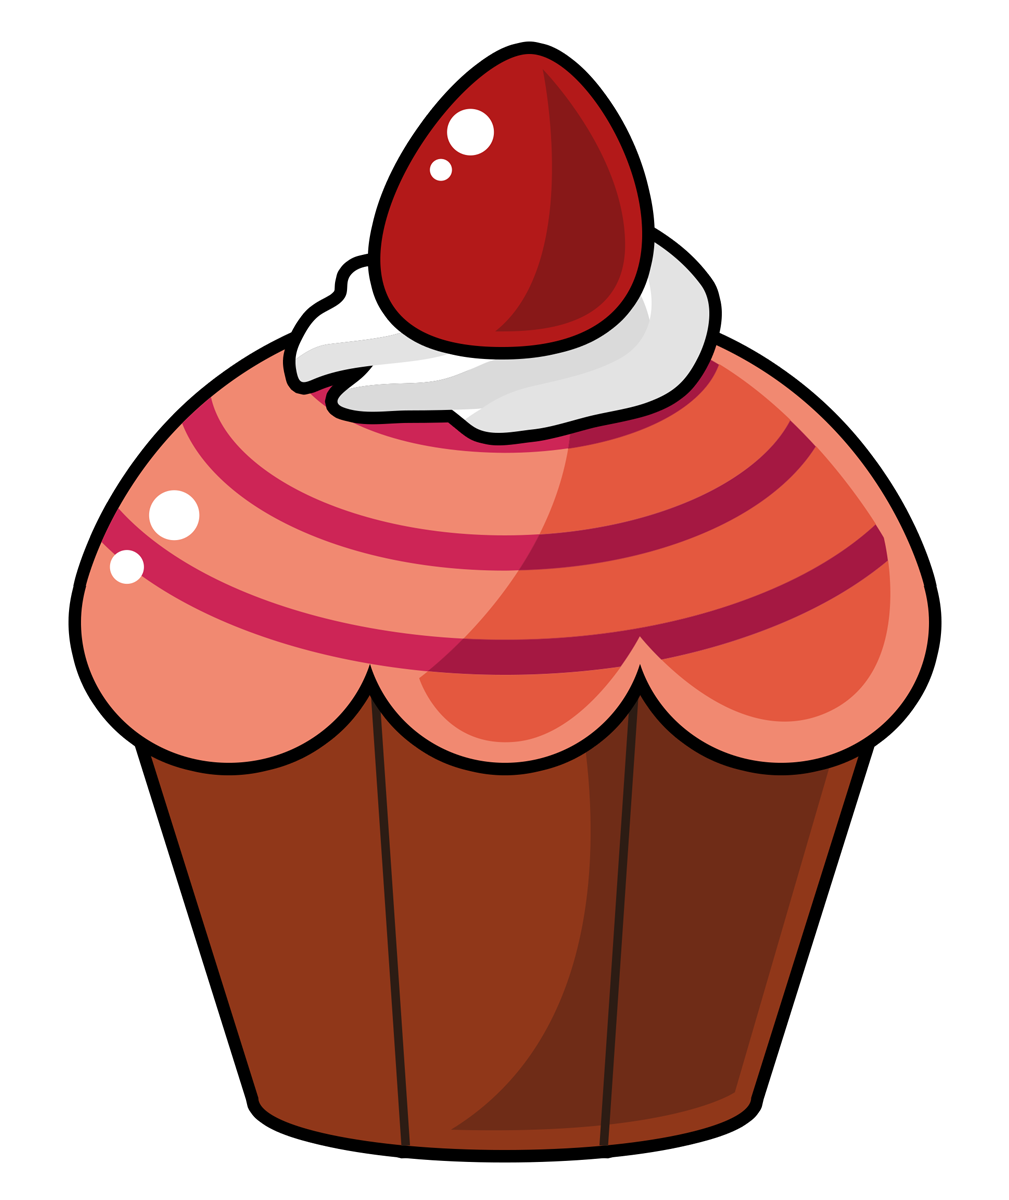 Muffin svg cartoon. Free desserts cliparts download